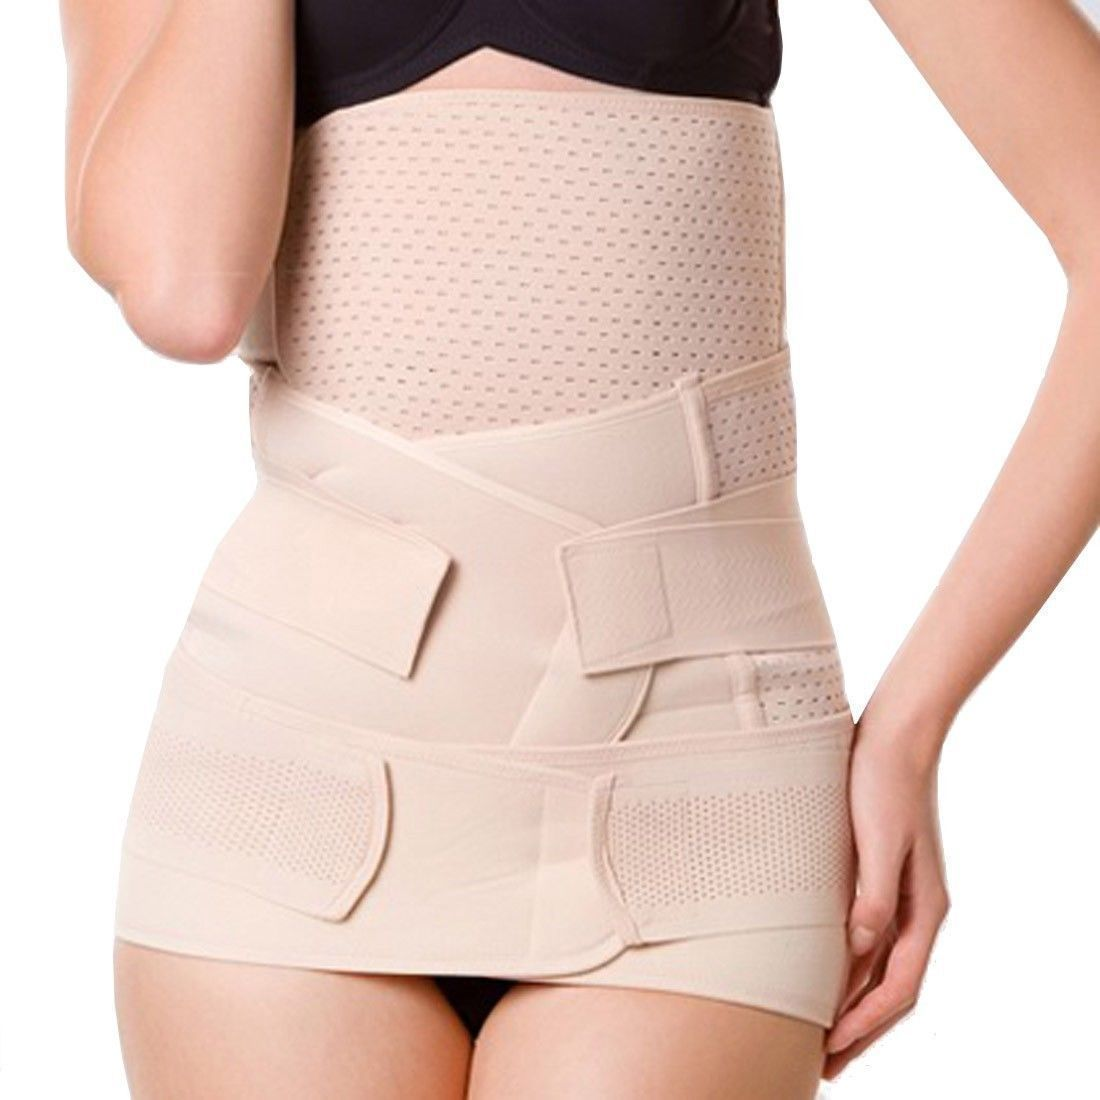 fd4112c3ed Post-Partum Waist Shaper Recovery Support Belly Trimmer Maternity Postnatal  Belt